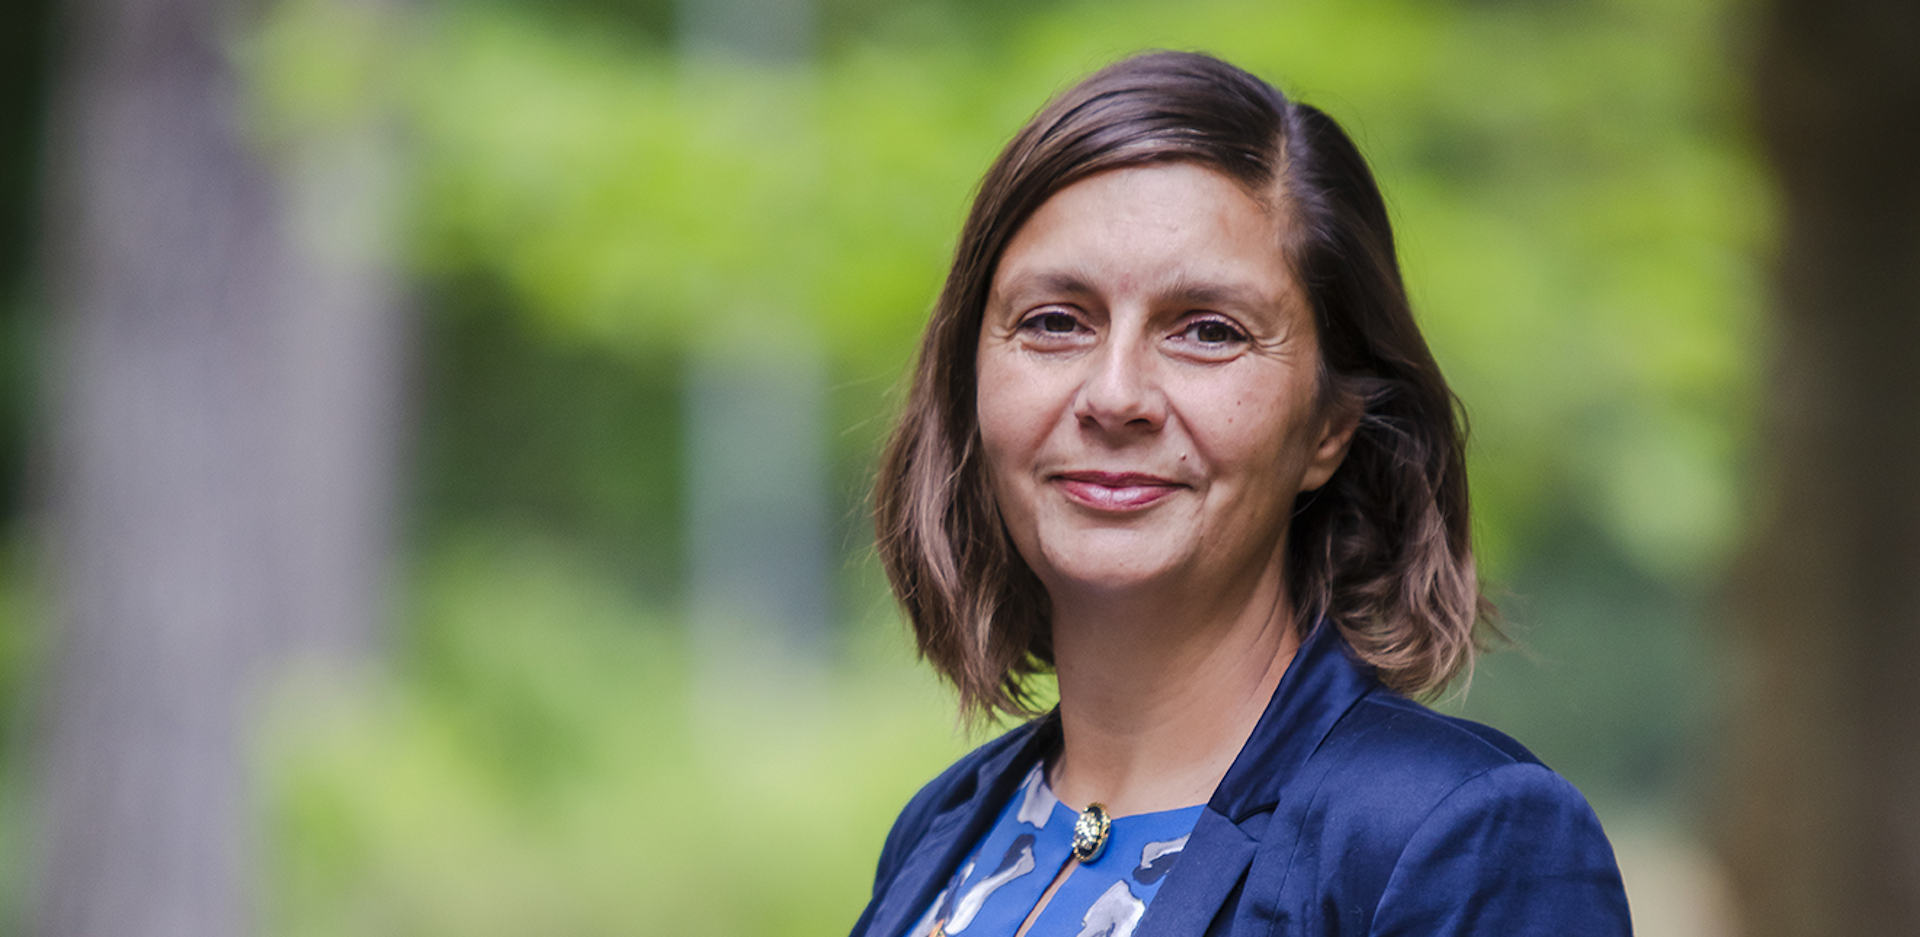 Patricia Rahemipour elected Chairwoman of the Landesverbands der Museen zu Berlin